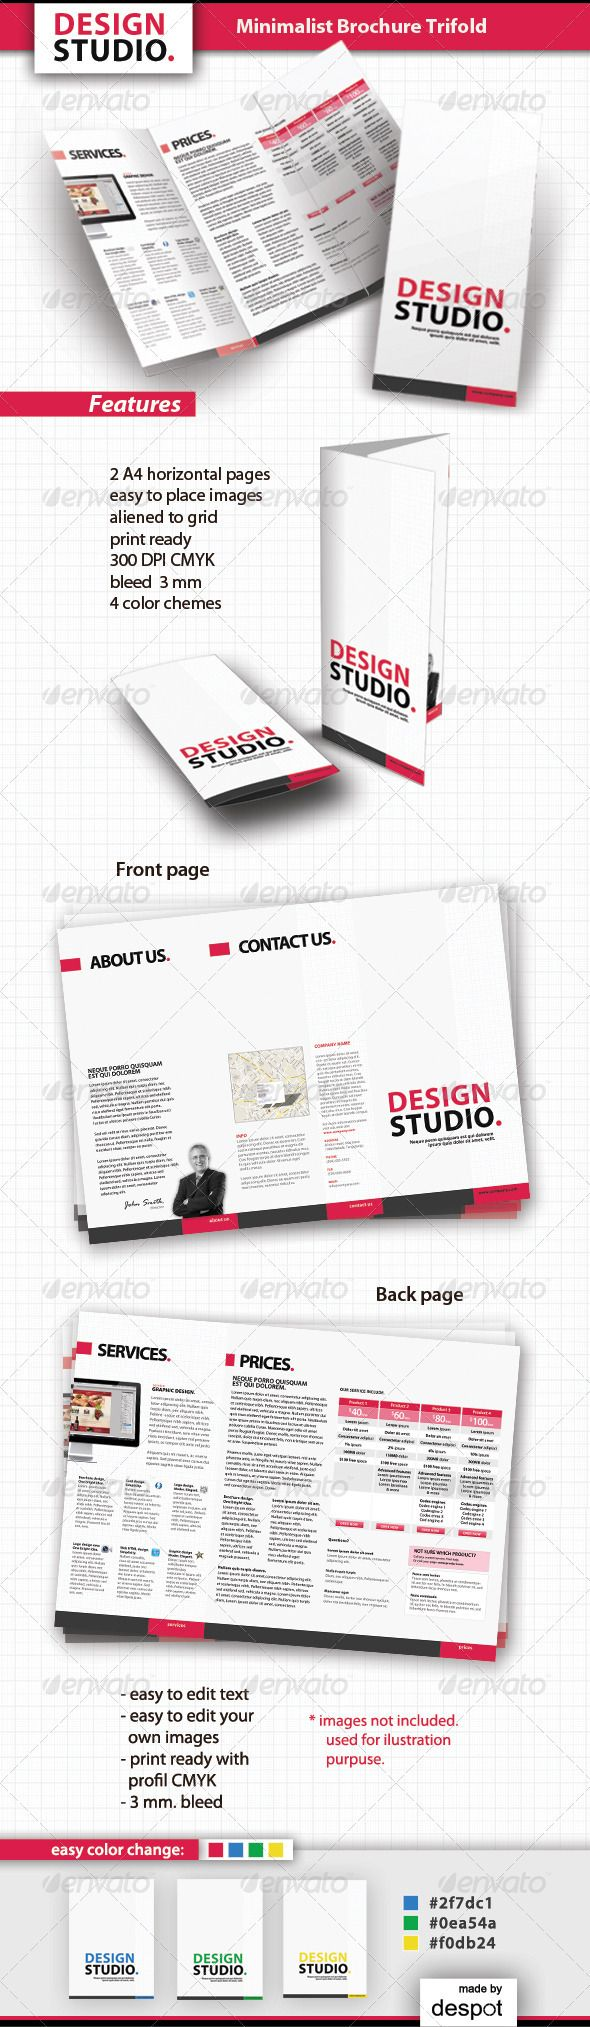 Minimalist Brochure Trifold by despotdesign